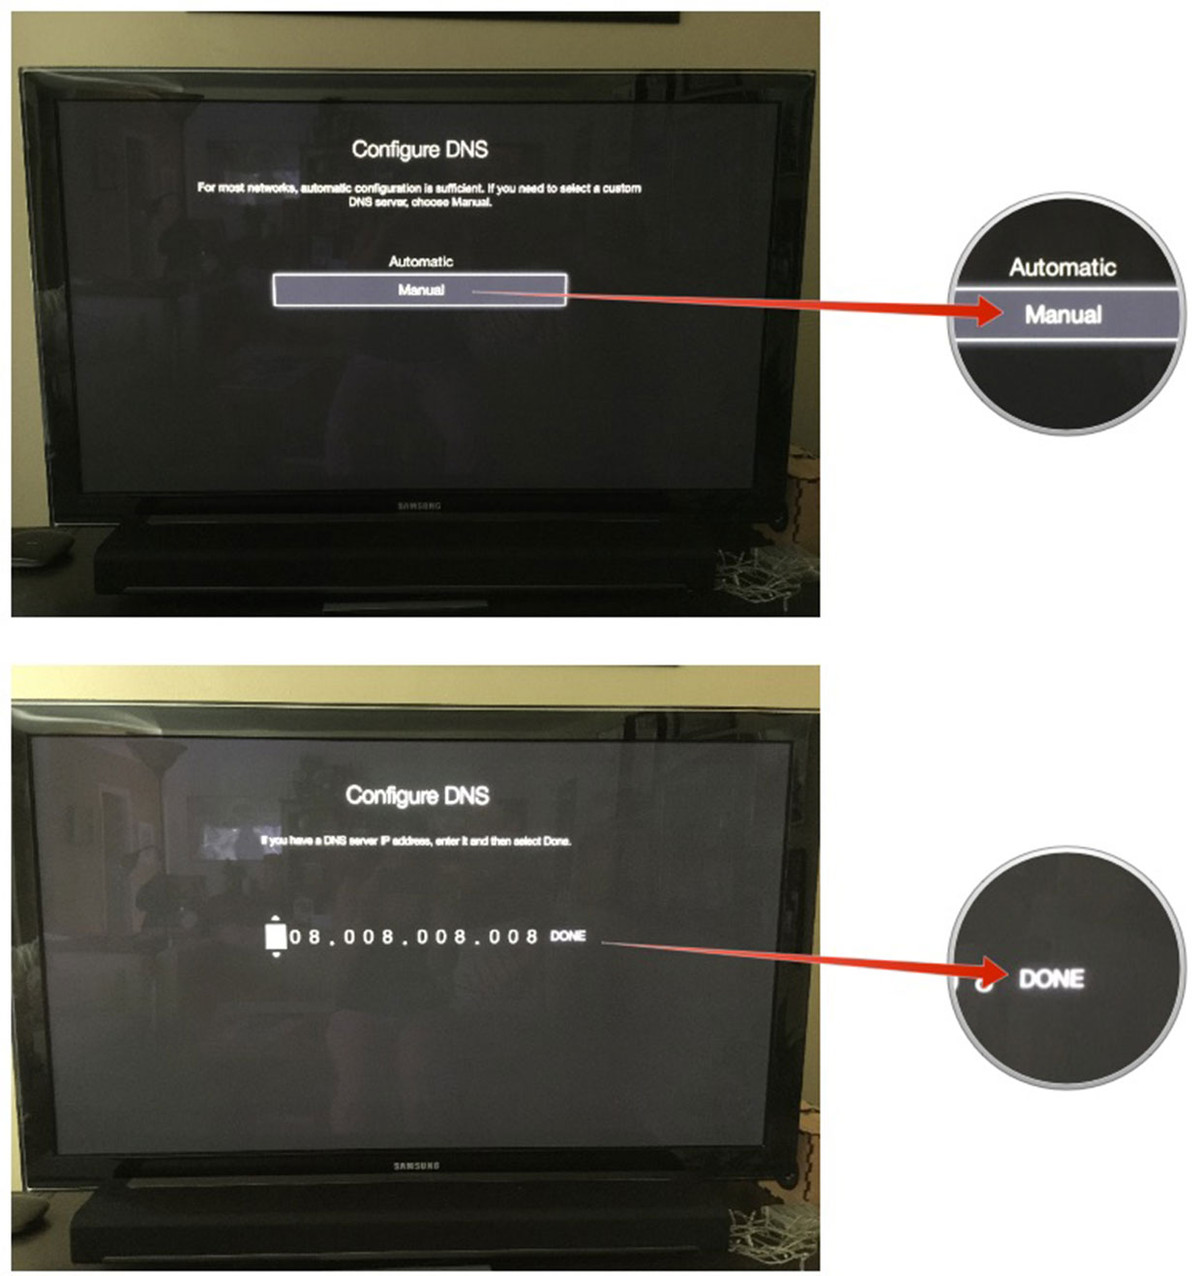 How to manually update DNS settings on your Apple TV